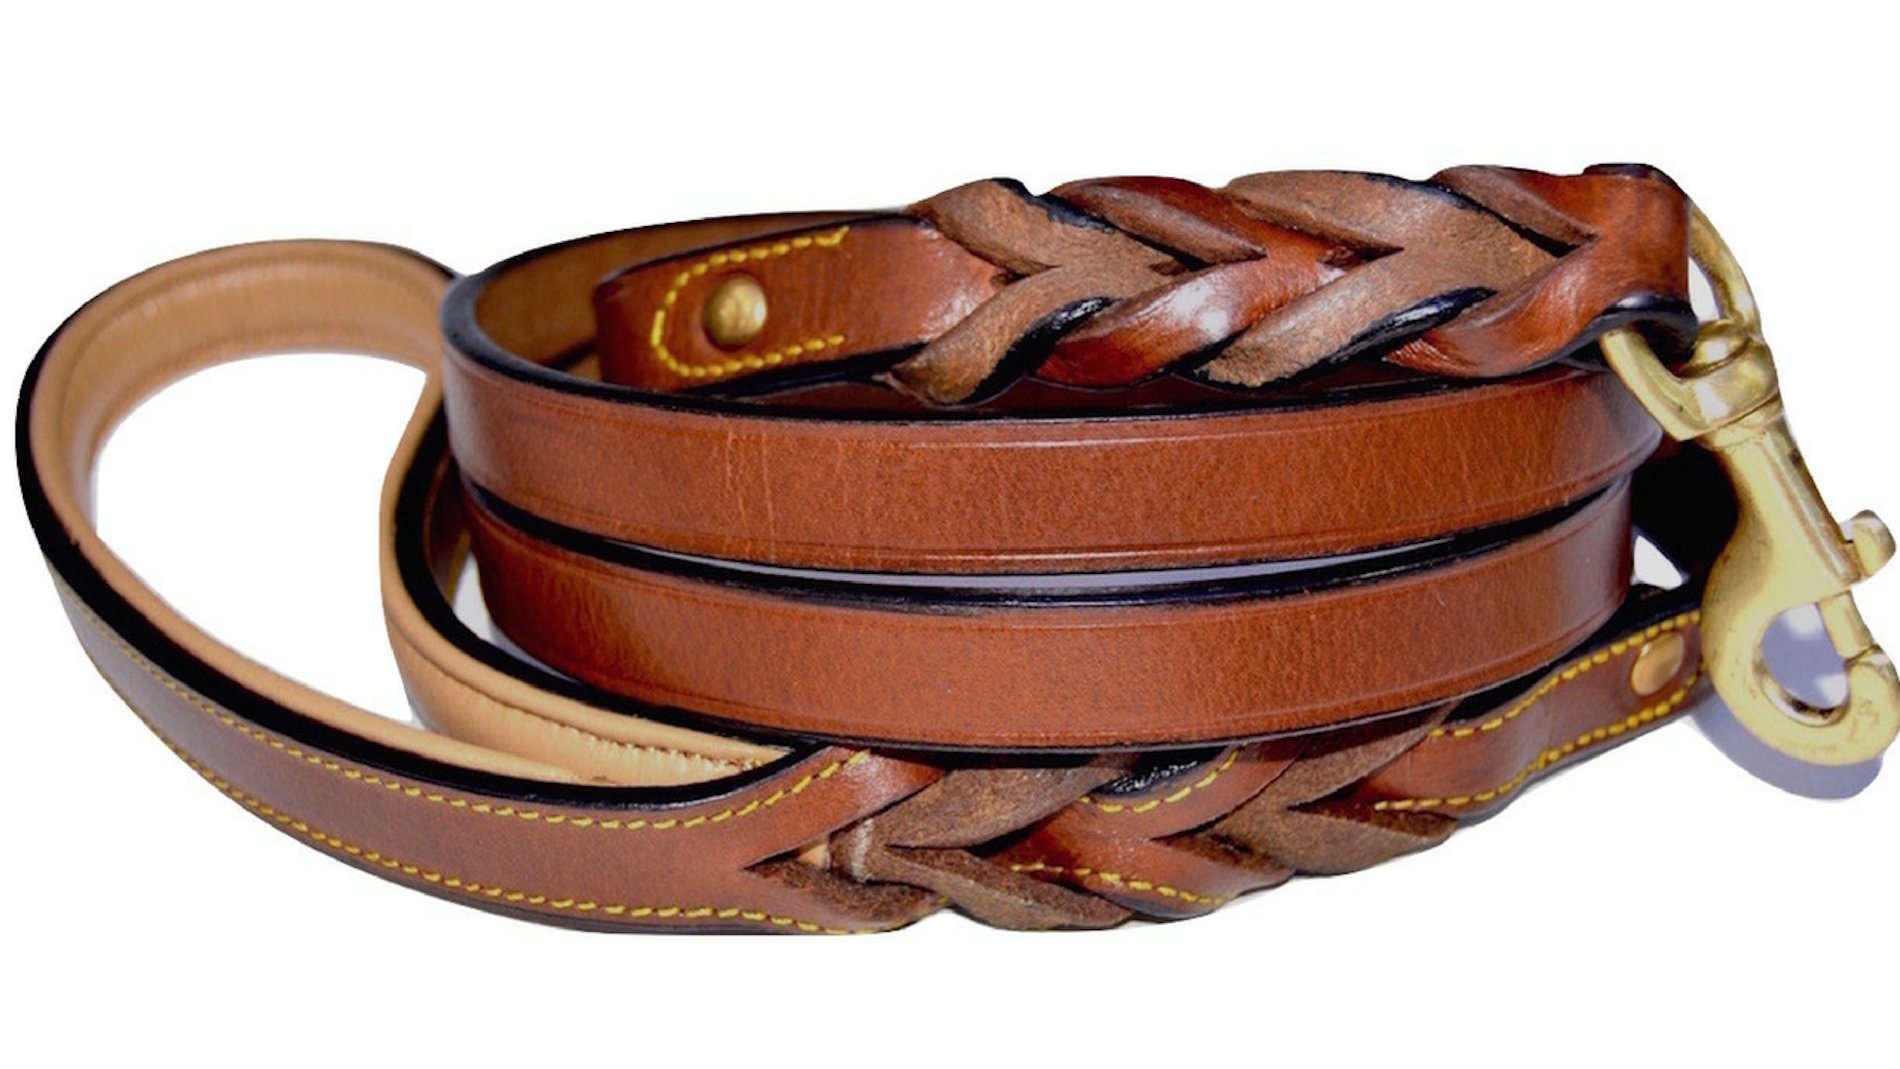 Soft Touch Collars Leather Braided Dog Leash, Brown 6ft x 3/4 Inch, Naturally Tanned 6 Foot Full Grain Leather Lead by Soft Touch Collars